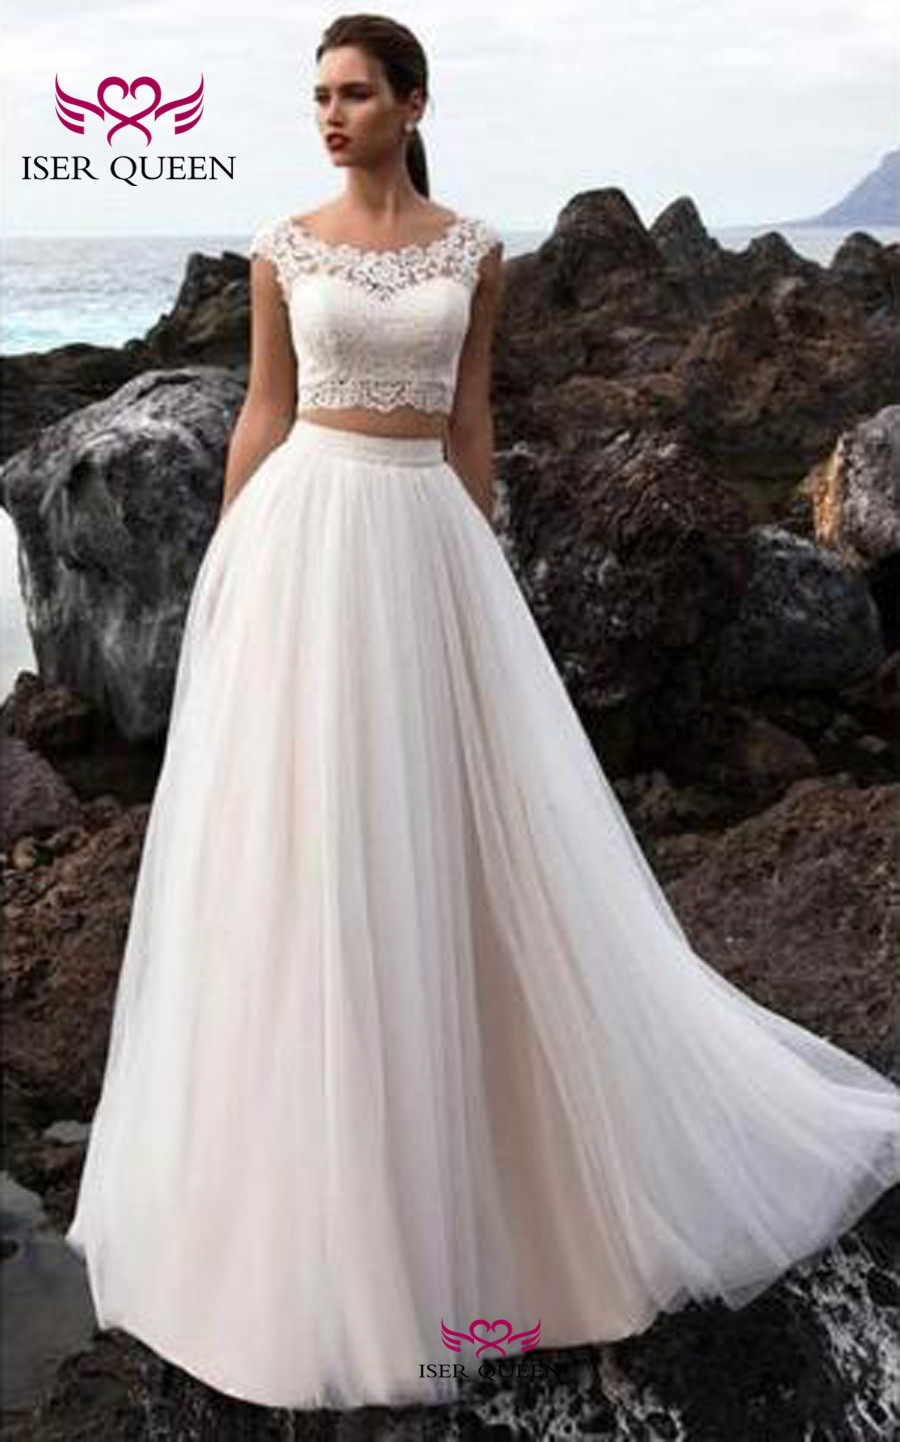 Two Pieces Design Sleeveless Lace Beach Wedding Dress 2019 Button Back Sweep Train Tulle Bobo Wedding Dresses Bridal Gowns W0458